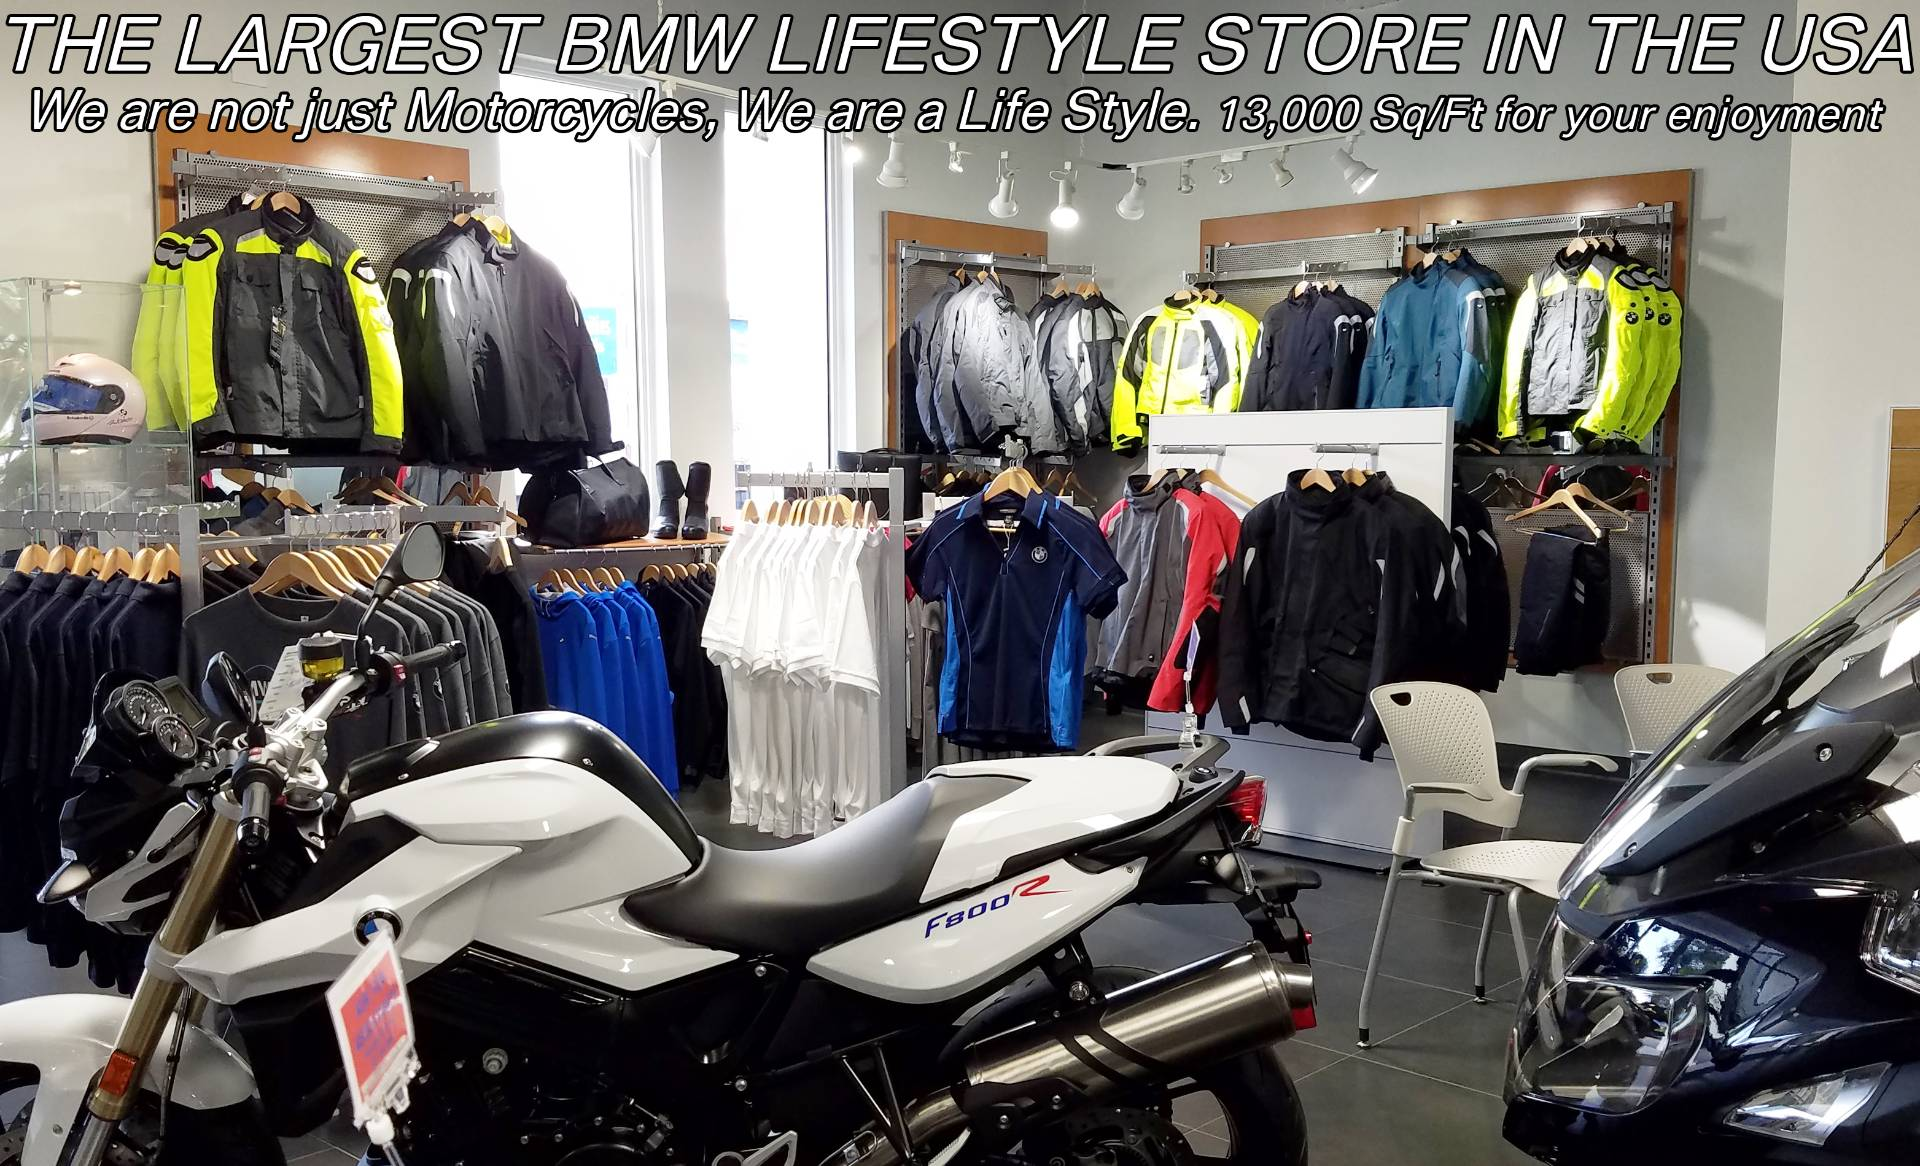 New 2019 BMW R 1250 GSA for sale, BMW for sale R 1250GSA, BMW Motorcycle R1250GSA, new BMW 1250GS Adventure, R1250GSAdventure, BMW Adventure, BMW Motorcycles of Miami, Motorcycles of Miami